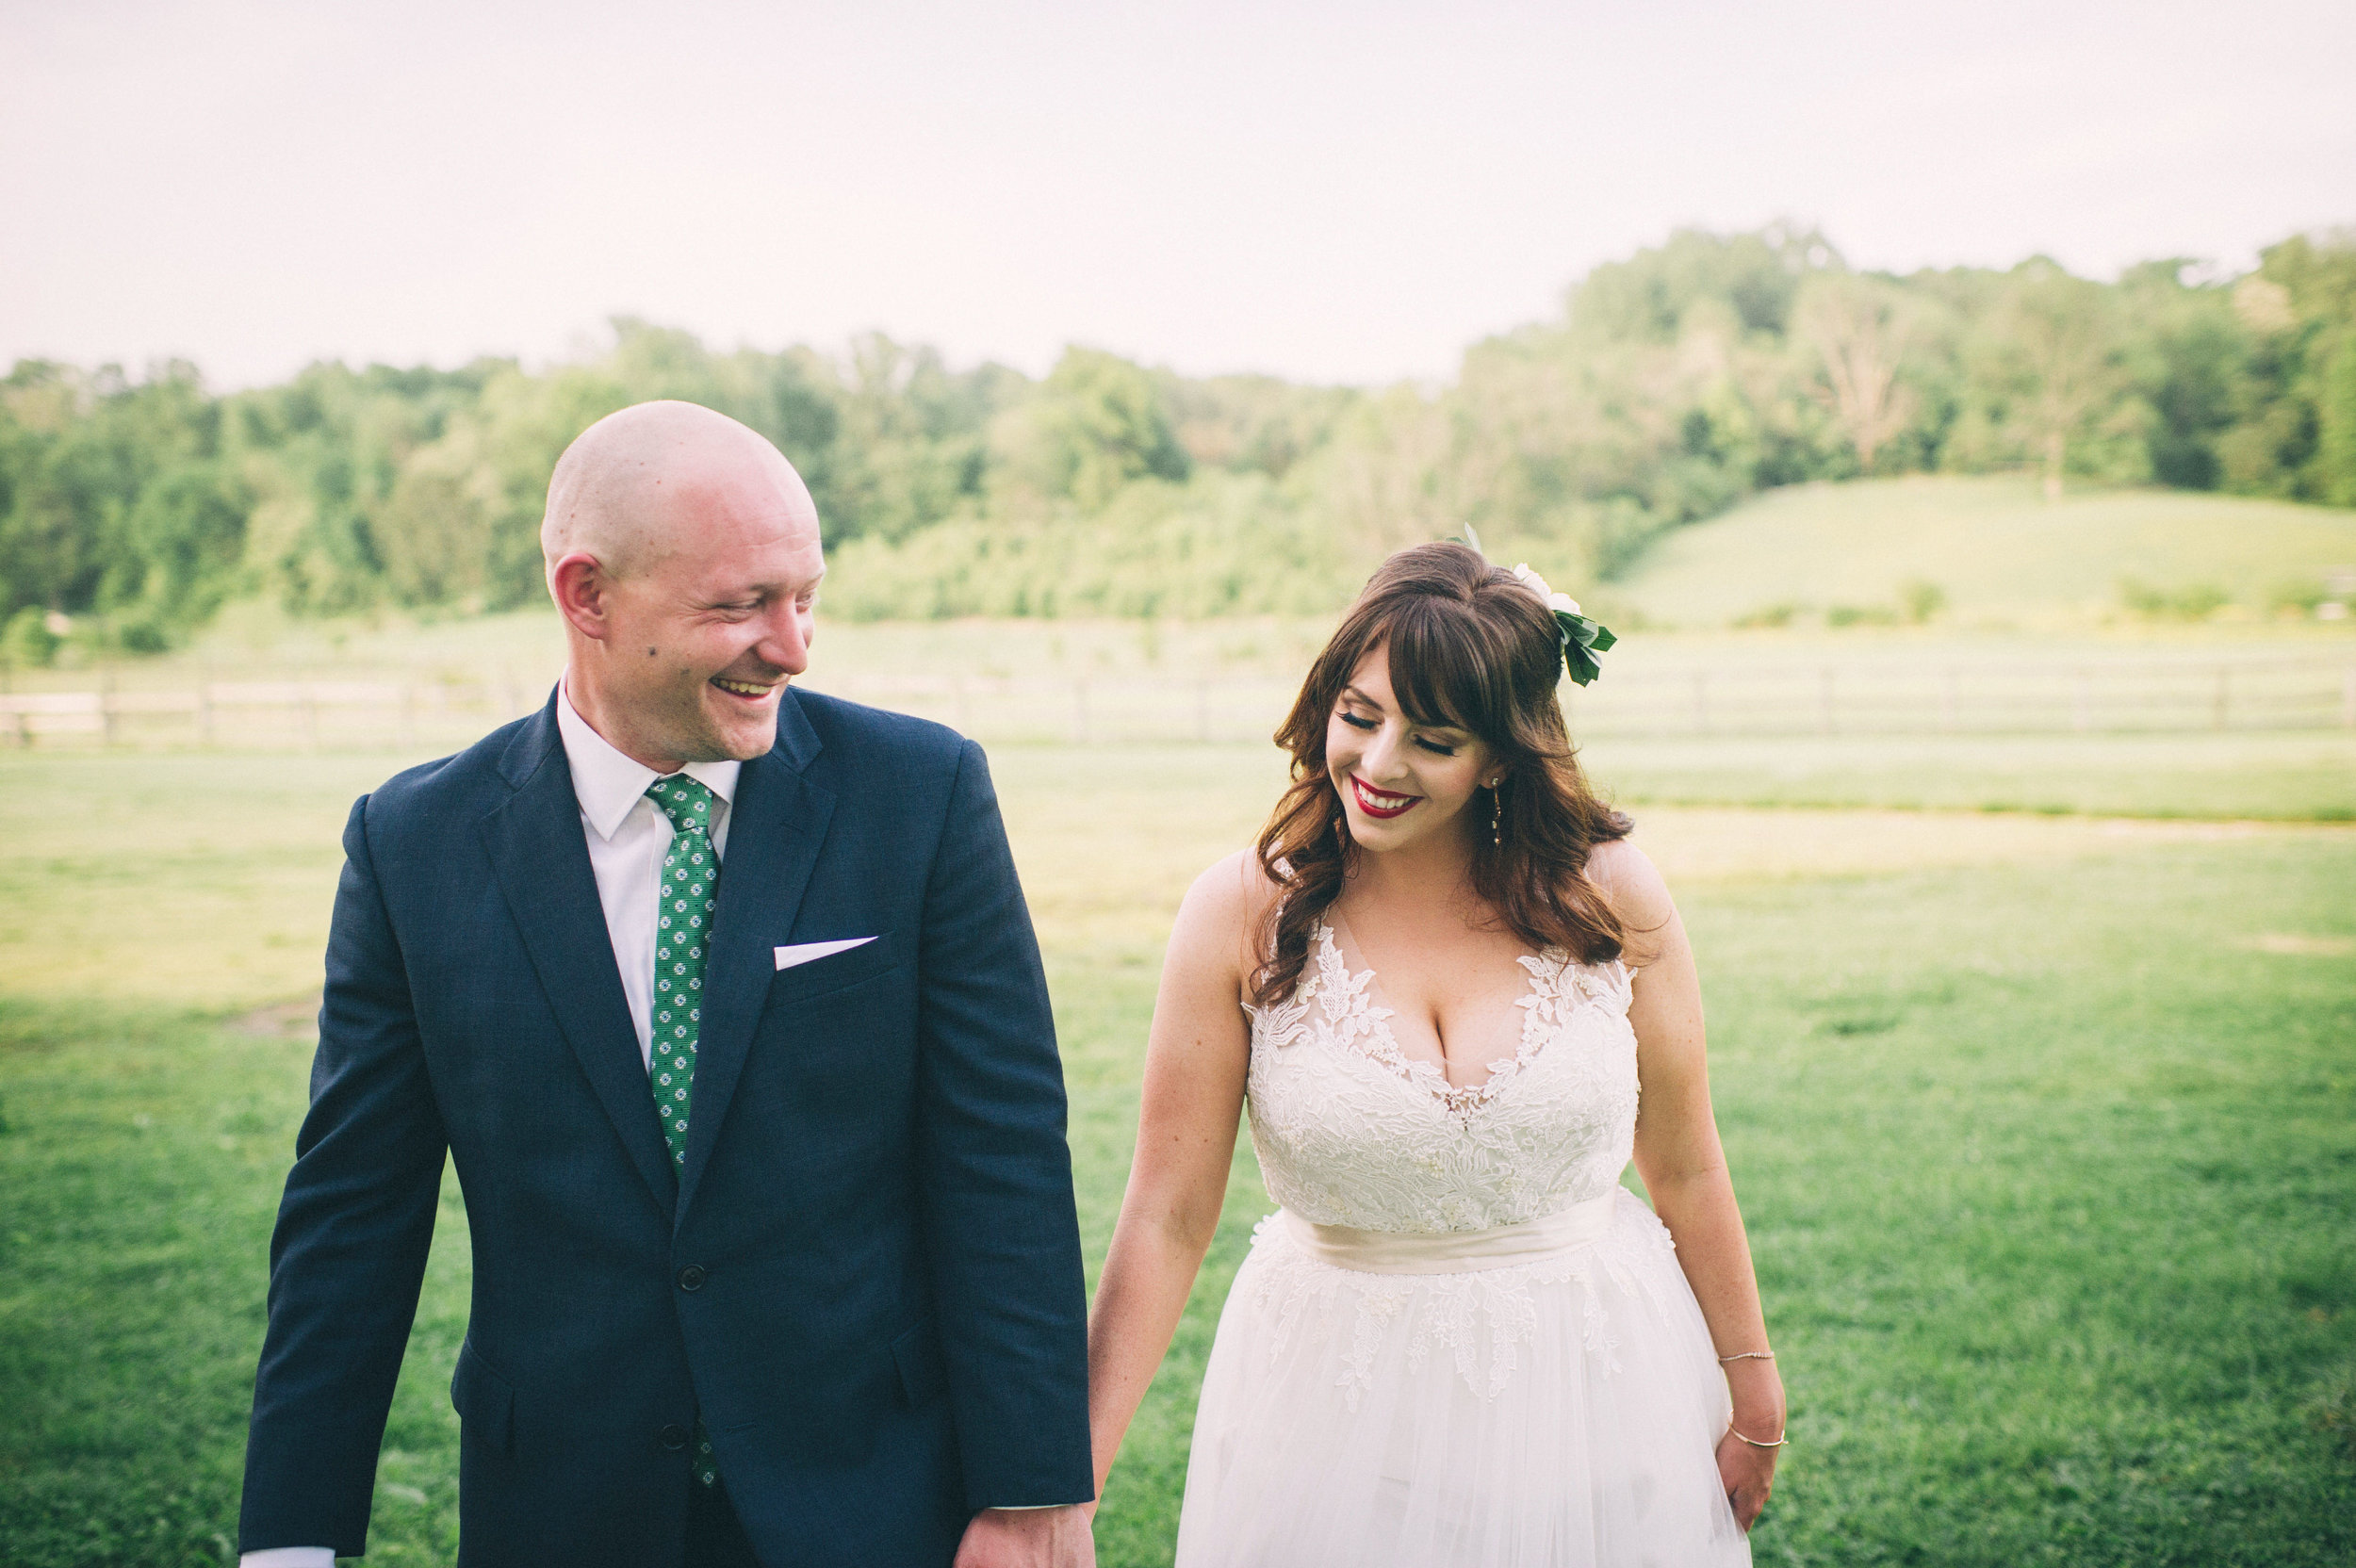 sarah-katherine-davis-photography-louisville-kentucky-wedding-photographer-gingerwoods-elopement-destination-wedding-photographer.jpg